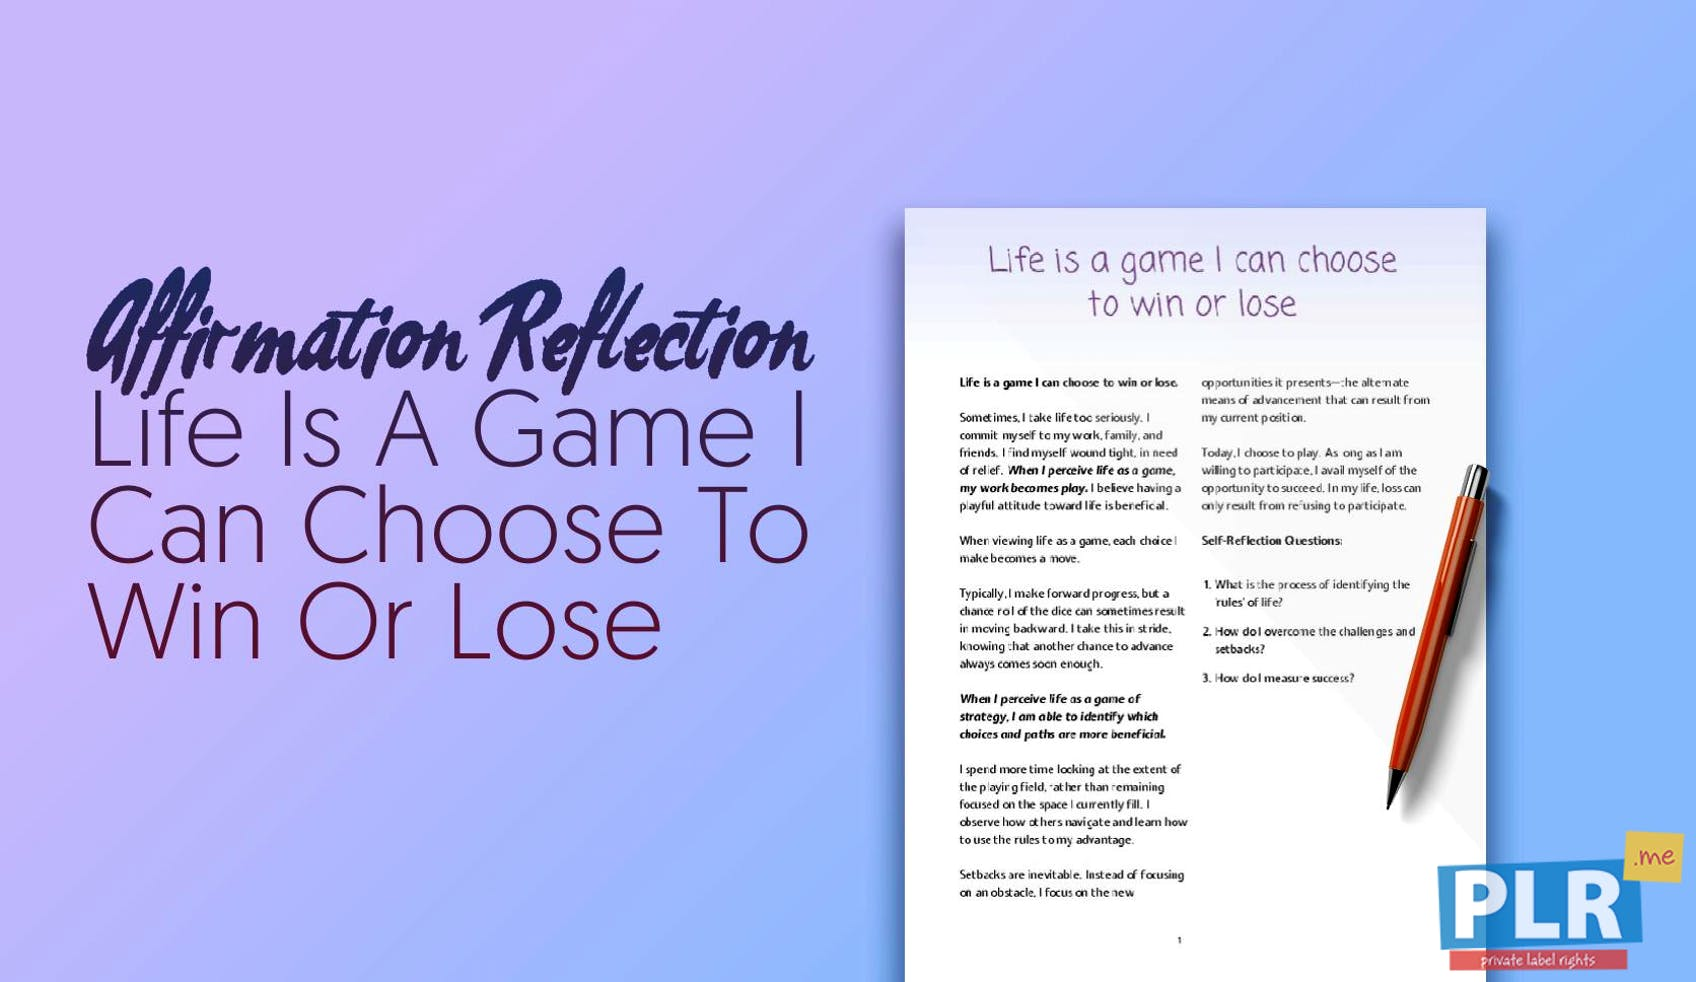 Life Is A Game I Can Choose To Win Or Lose